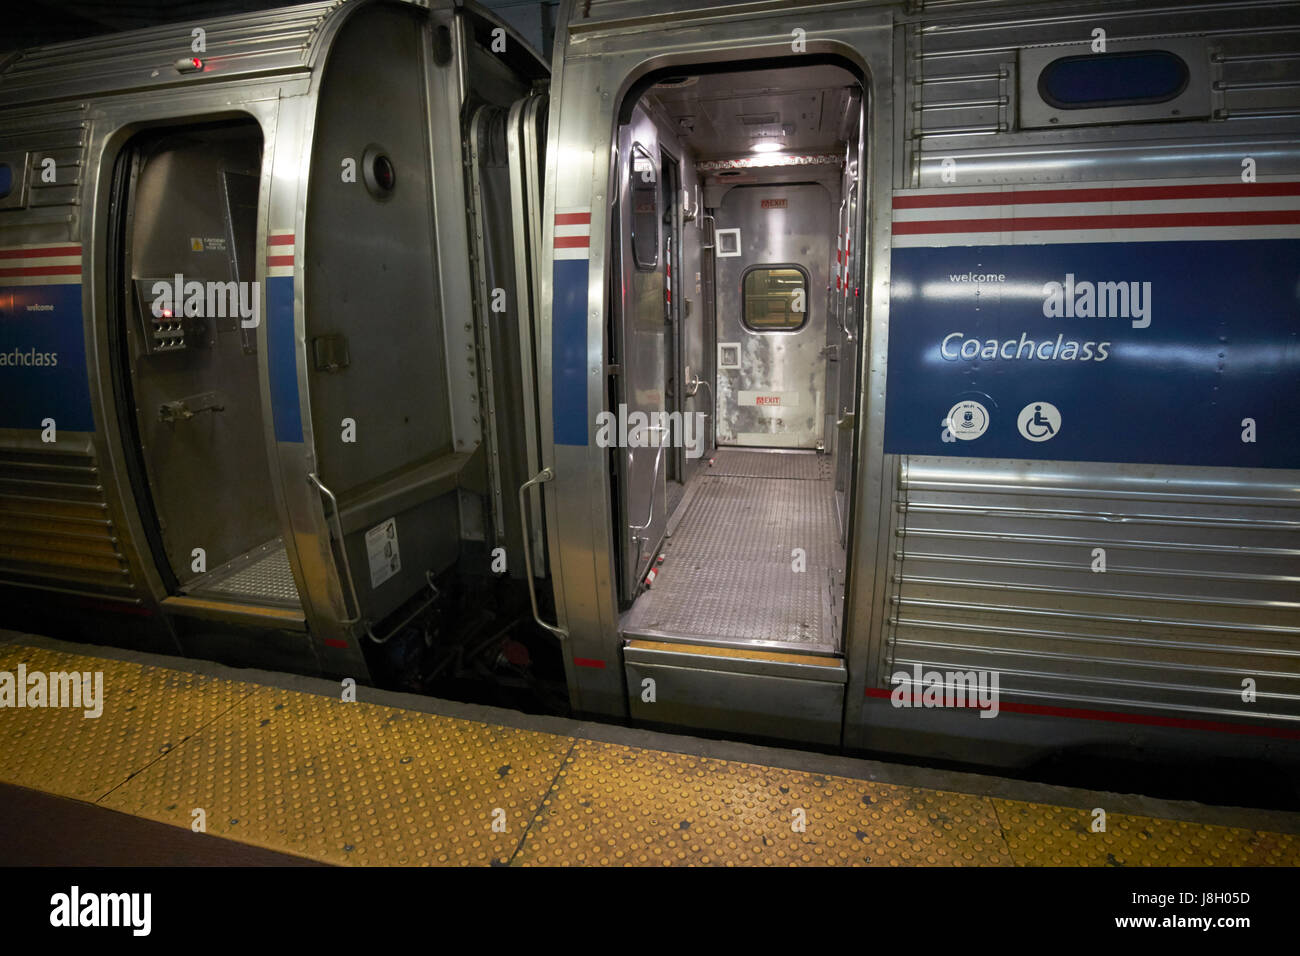 amtrak coachclass train carriages at penn station New York City USA - Stock Image